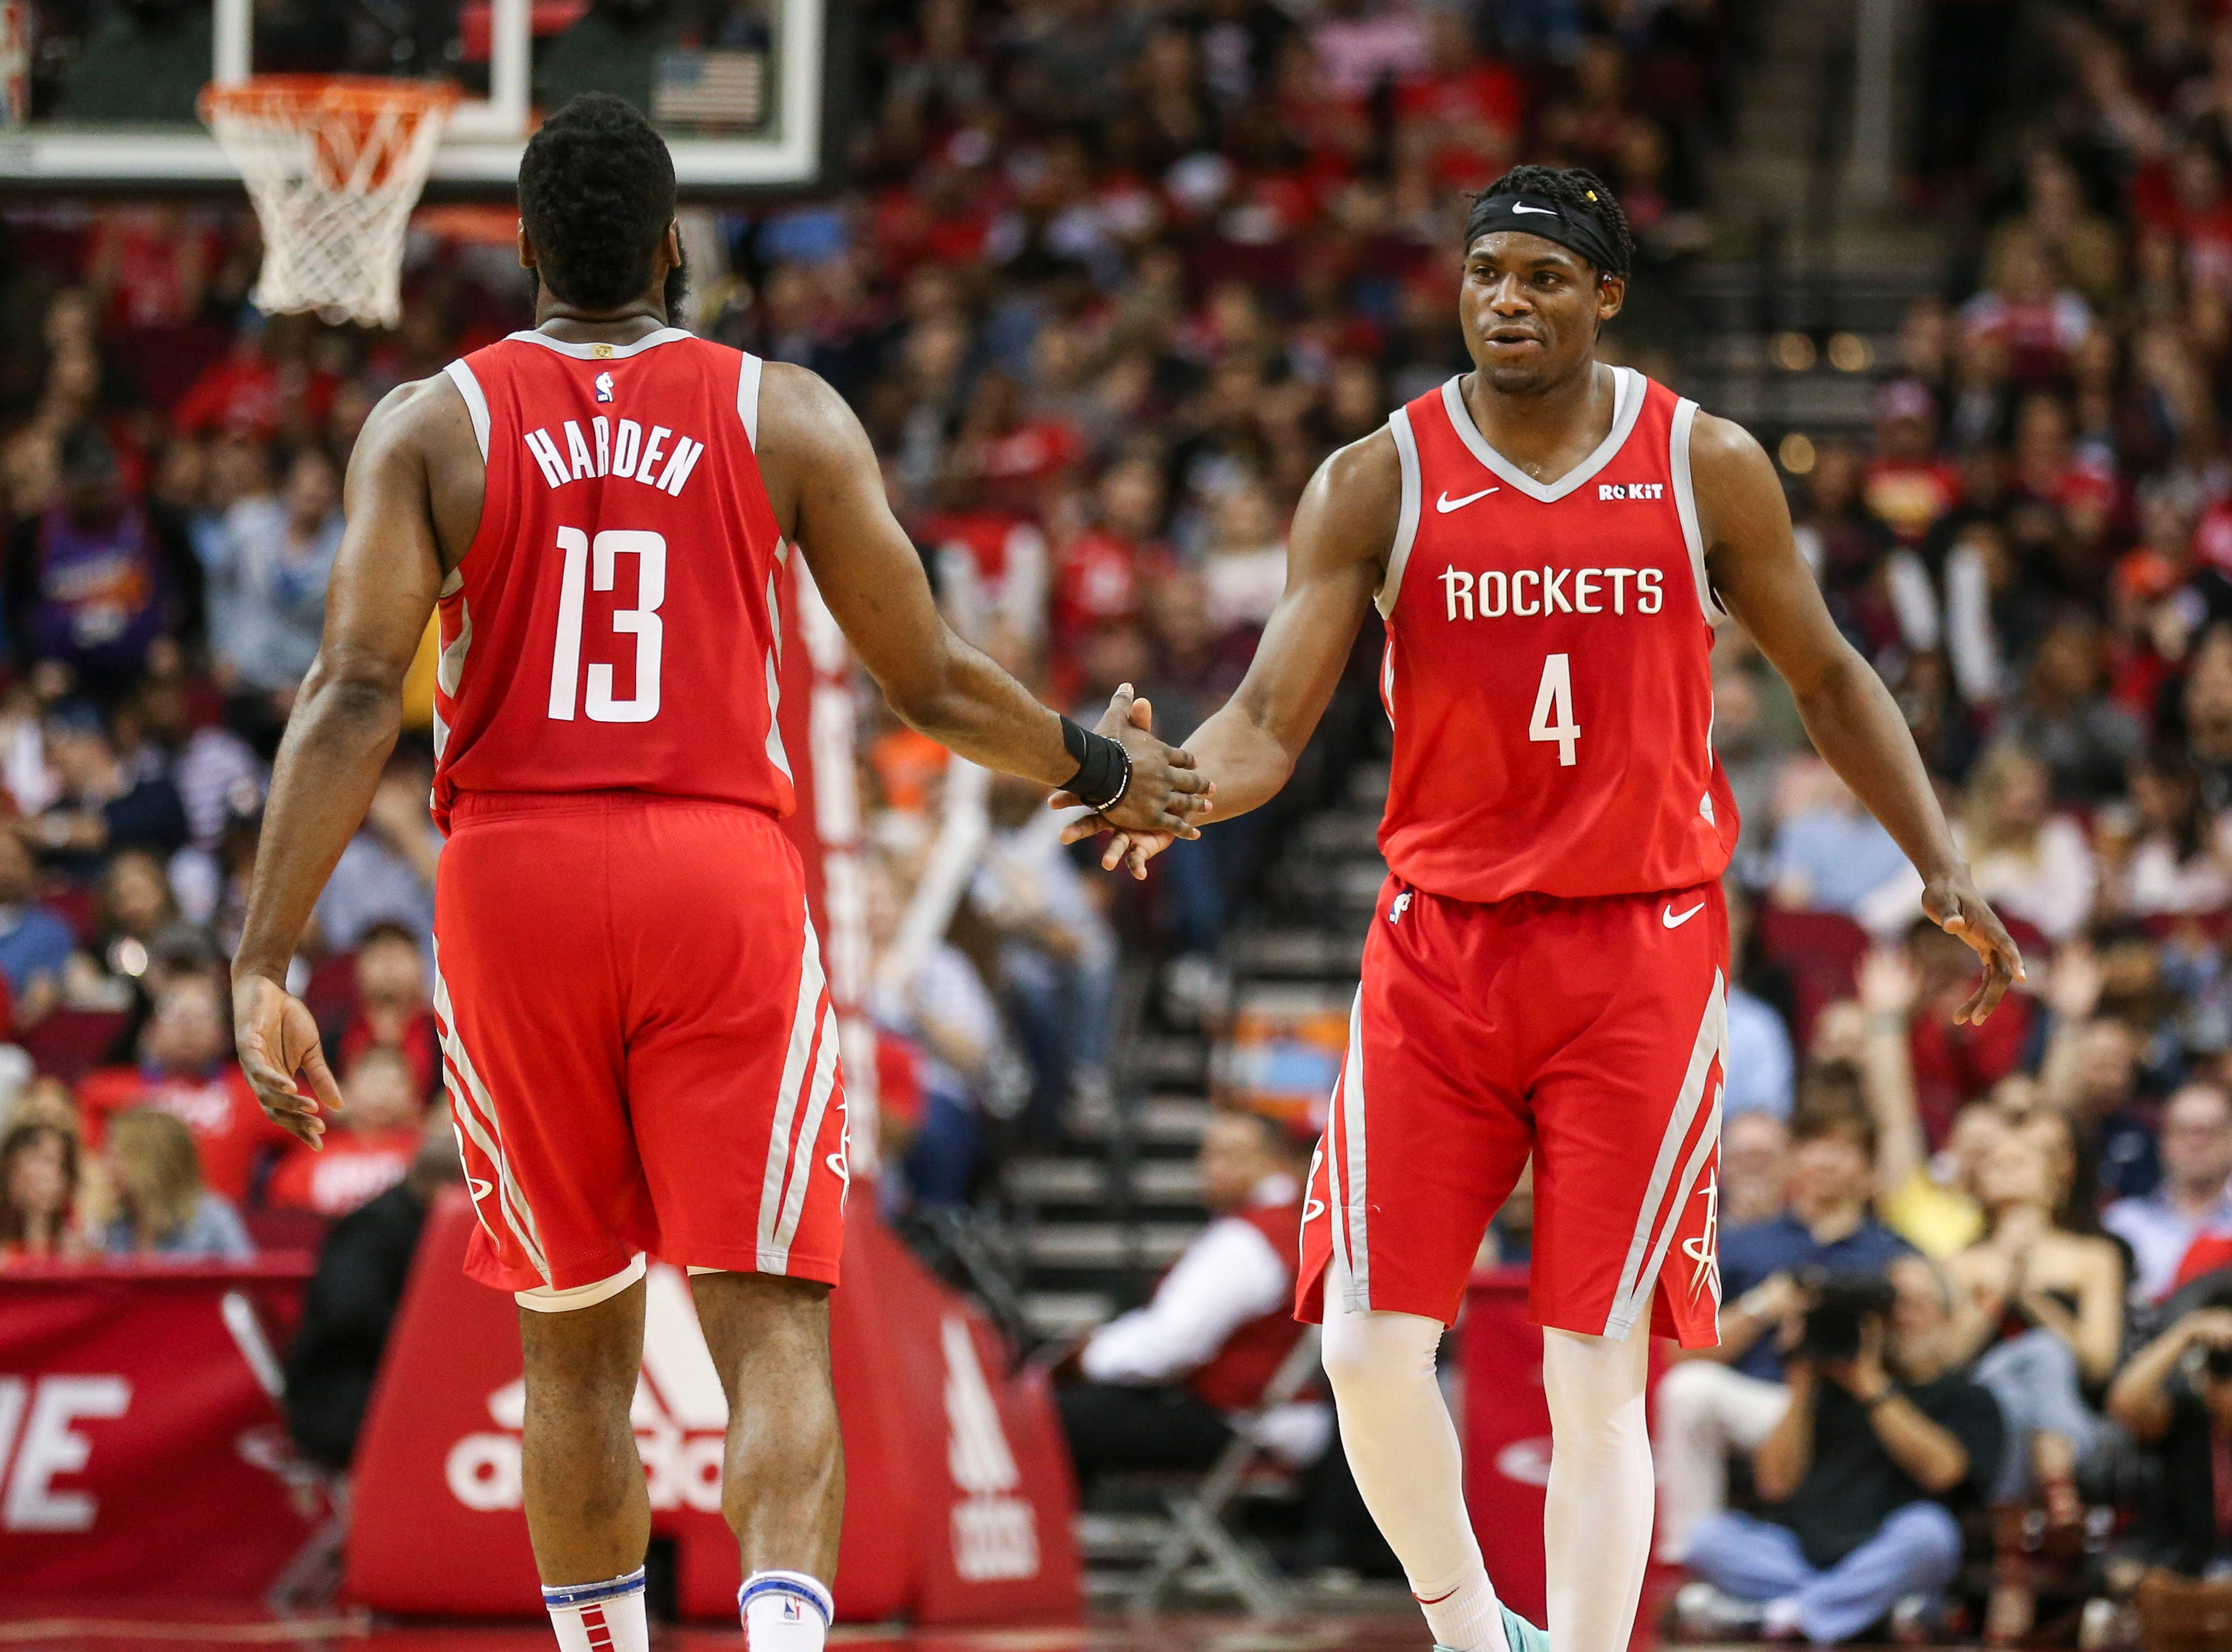 Apr 7, 2019; Houston, TX, USA; Houston Rockets forward Danuel House Jr. (4) celebrates with guard James Harden (13) after a play during the second quarter against the Phoenix Suns at Toyota Center. Mandatory Credit: Troy Taormina-USA TODAY Sports